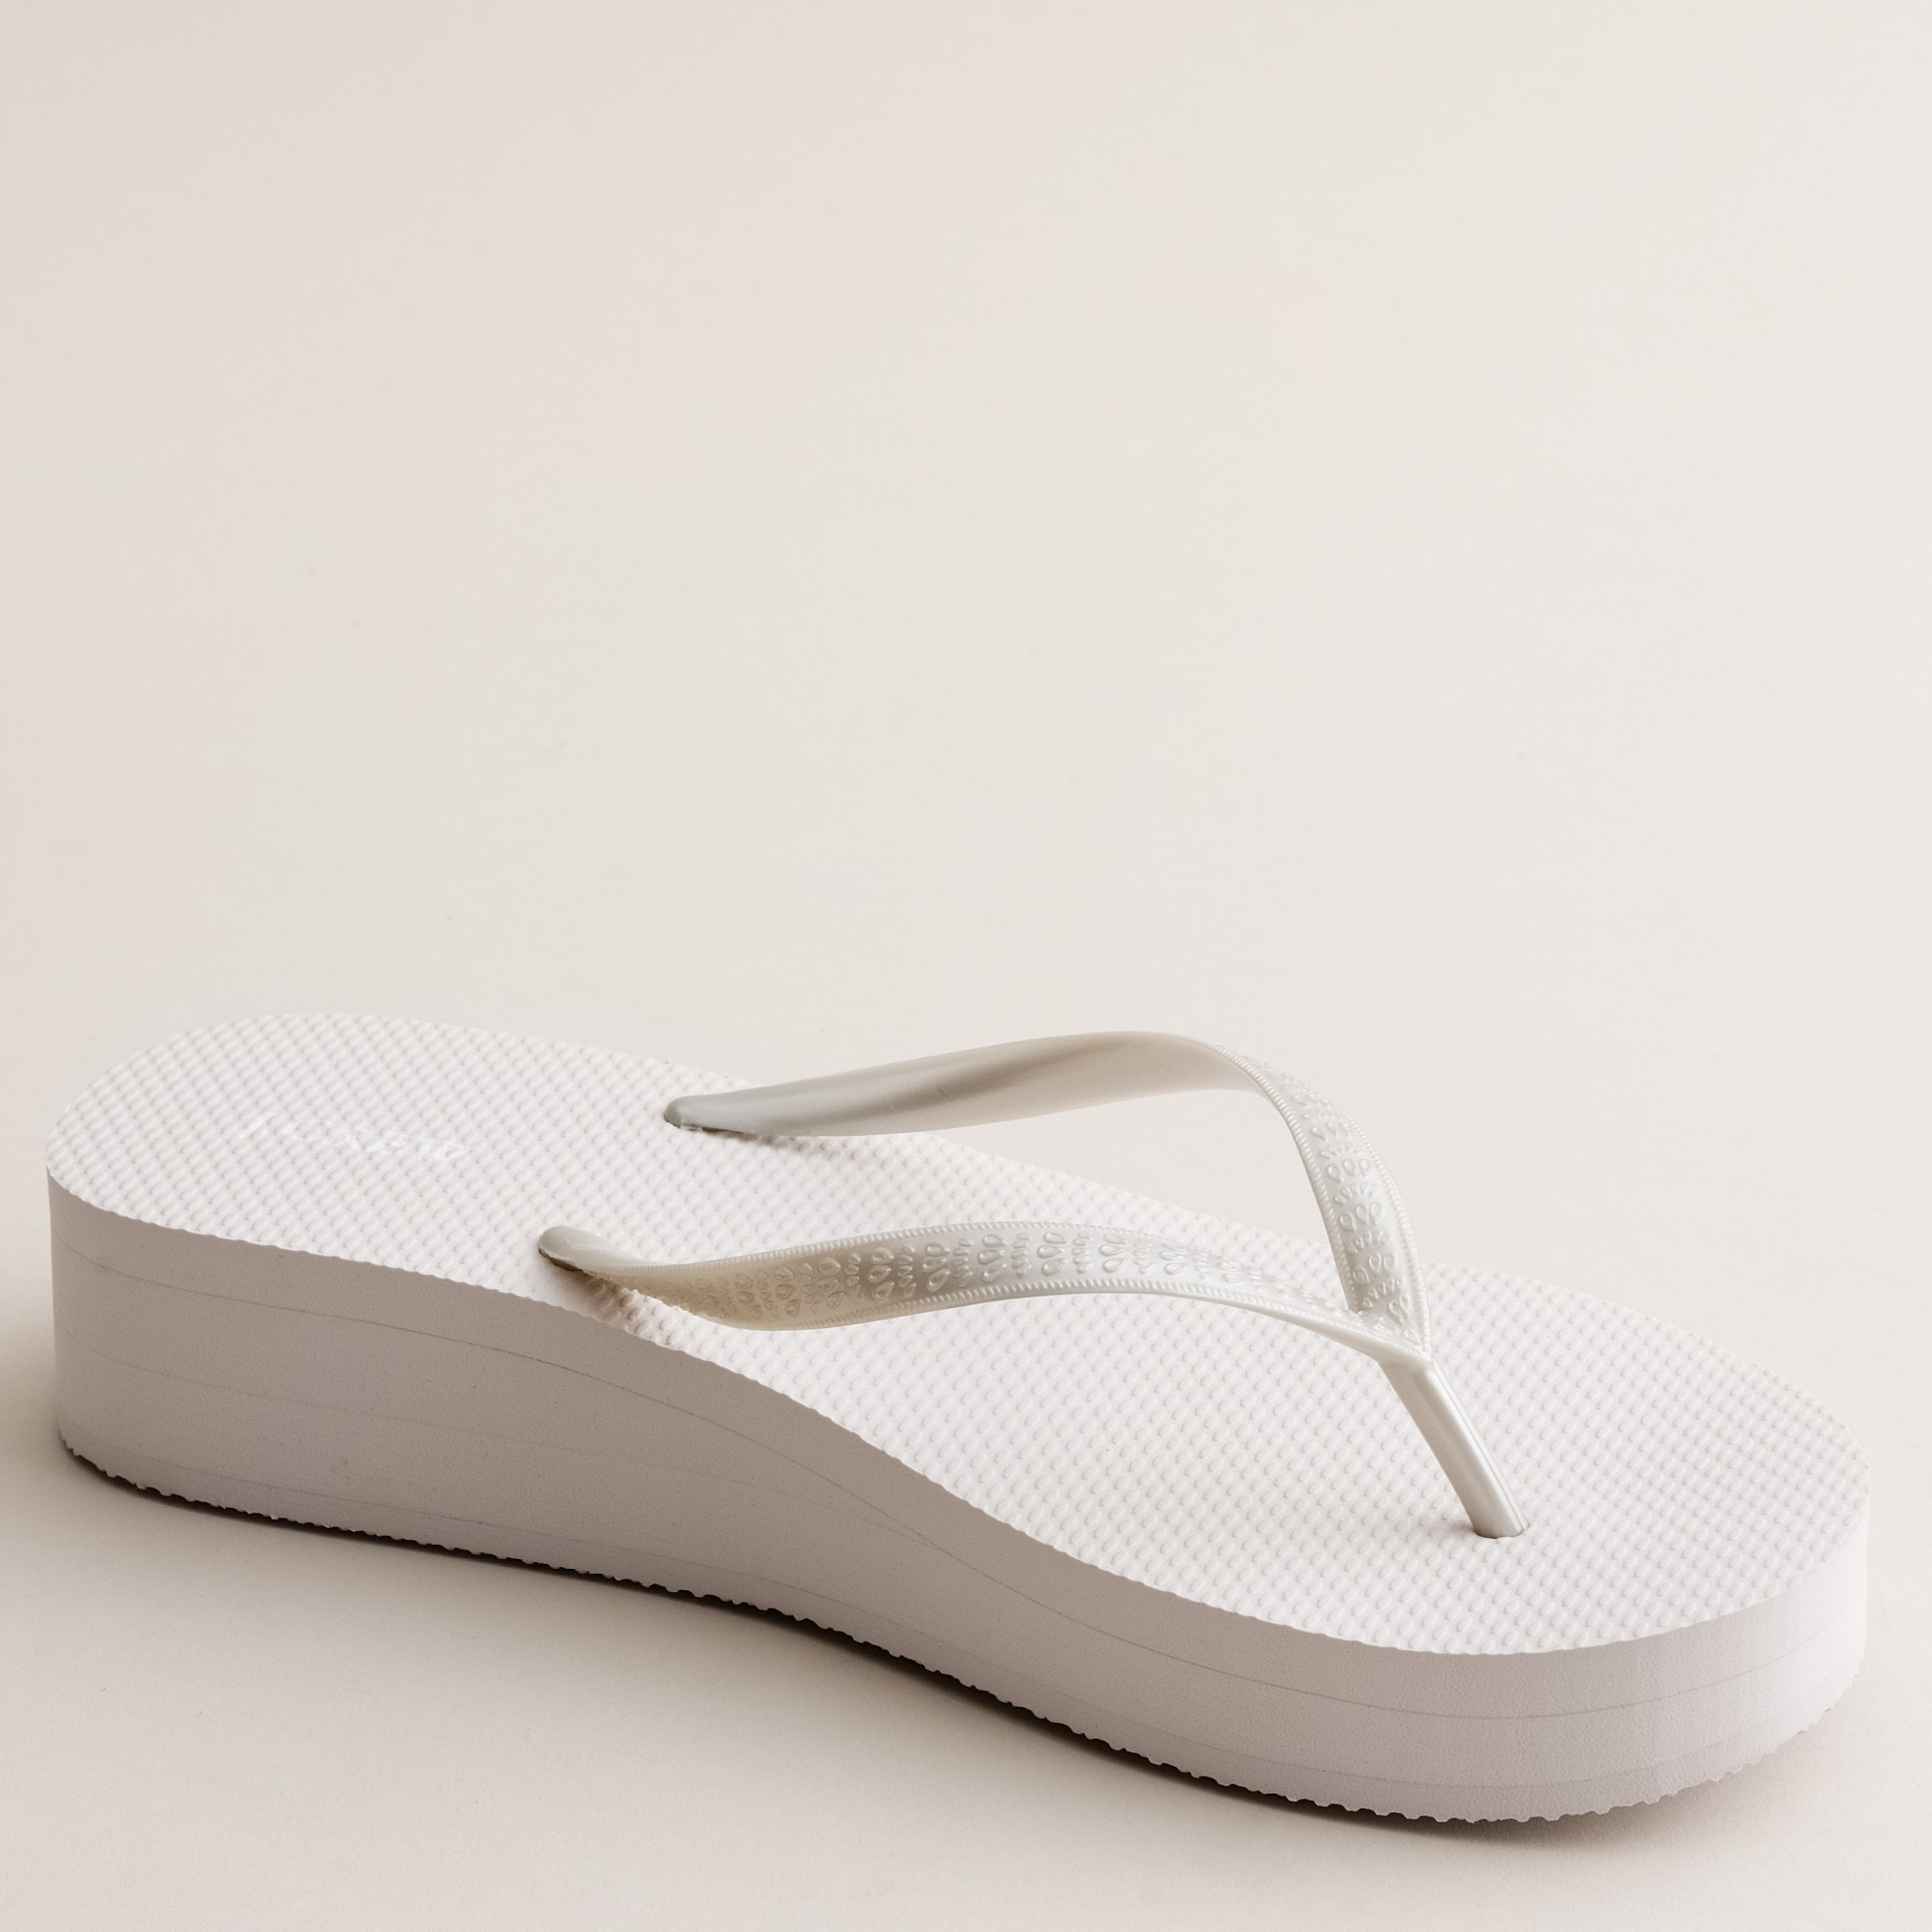 5021661b22e6 Lyst - J.Crew Skinny Wedge Flip-flops in White